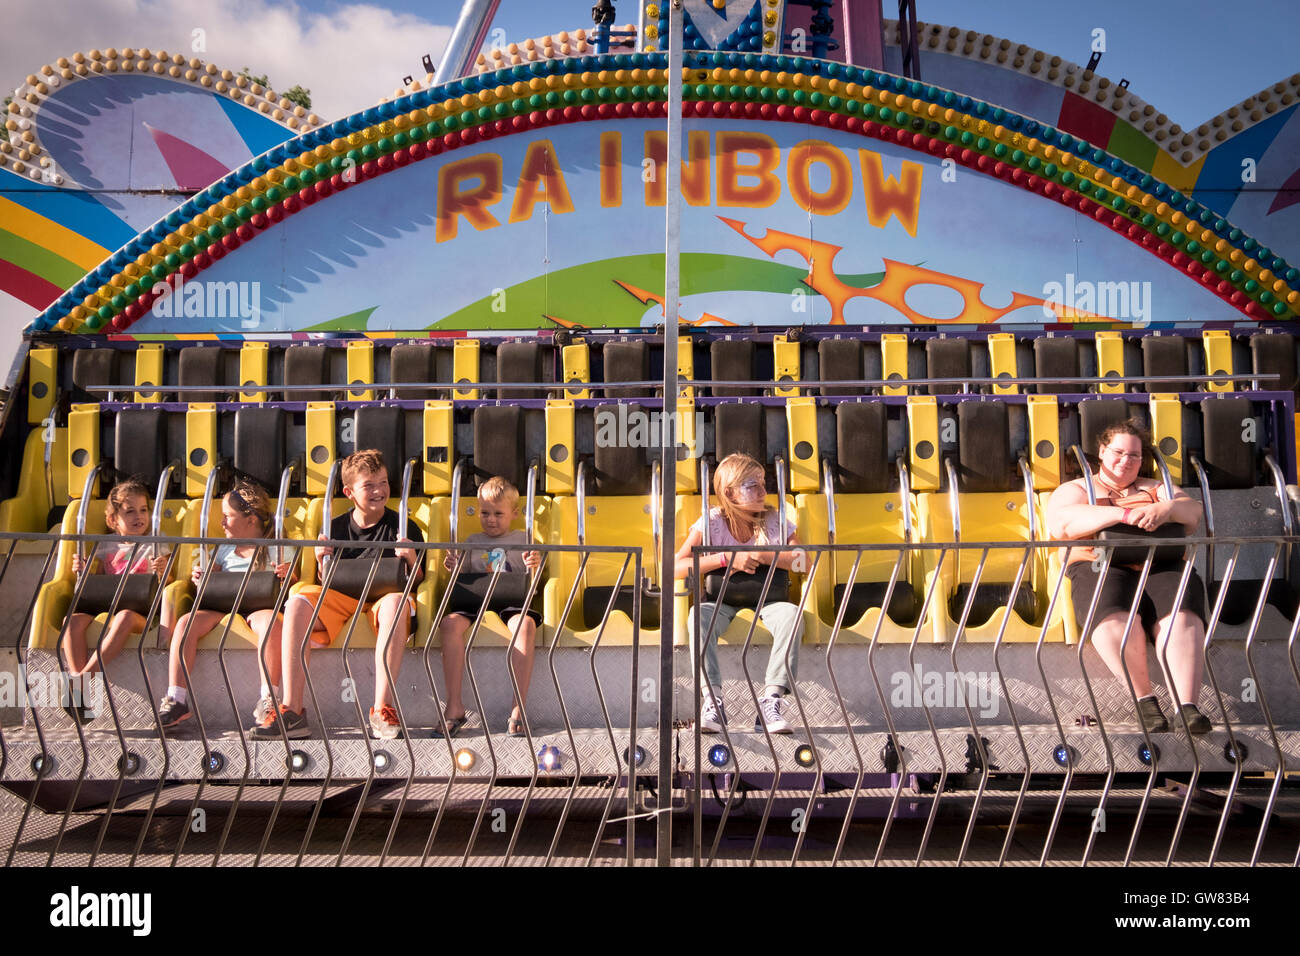 Six children await the start of a sideshow ride at a country fair - Stock Image